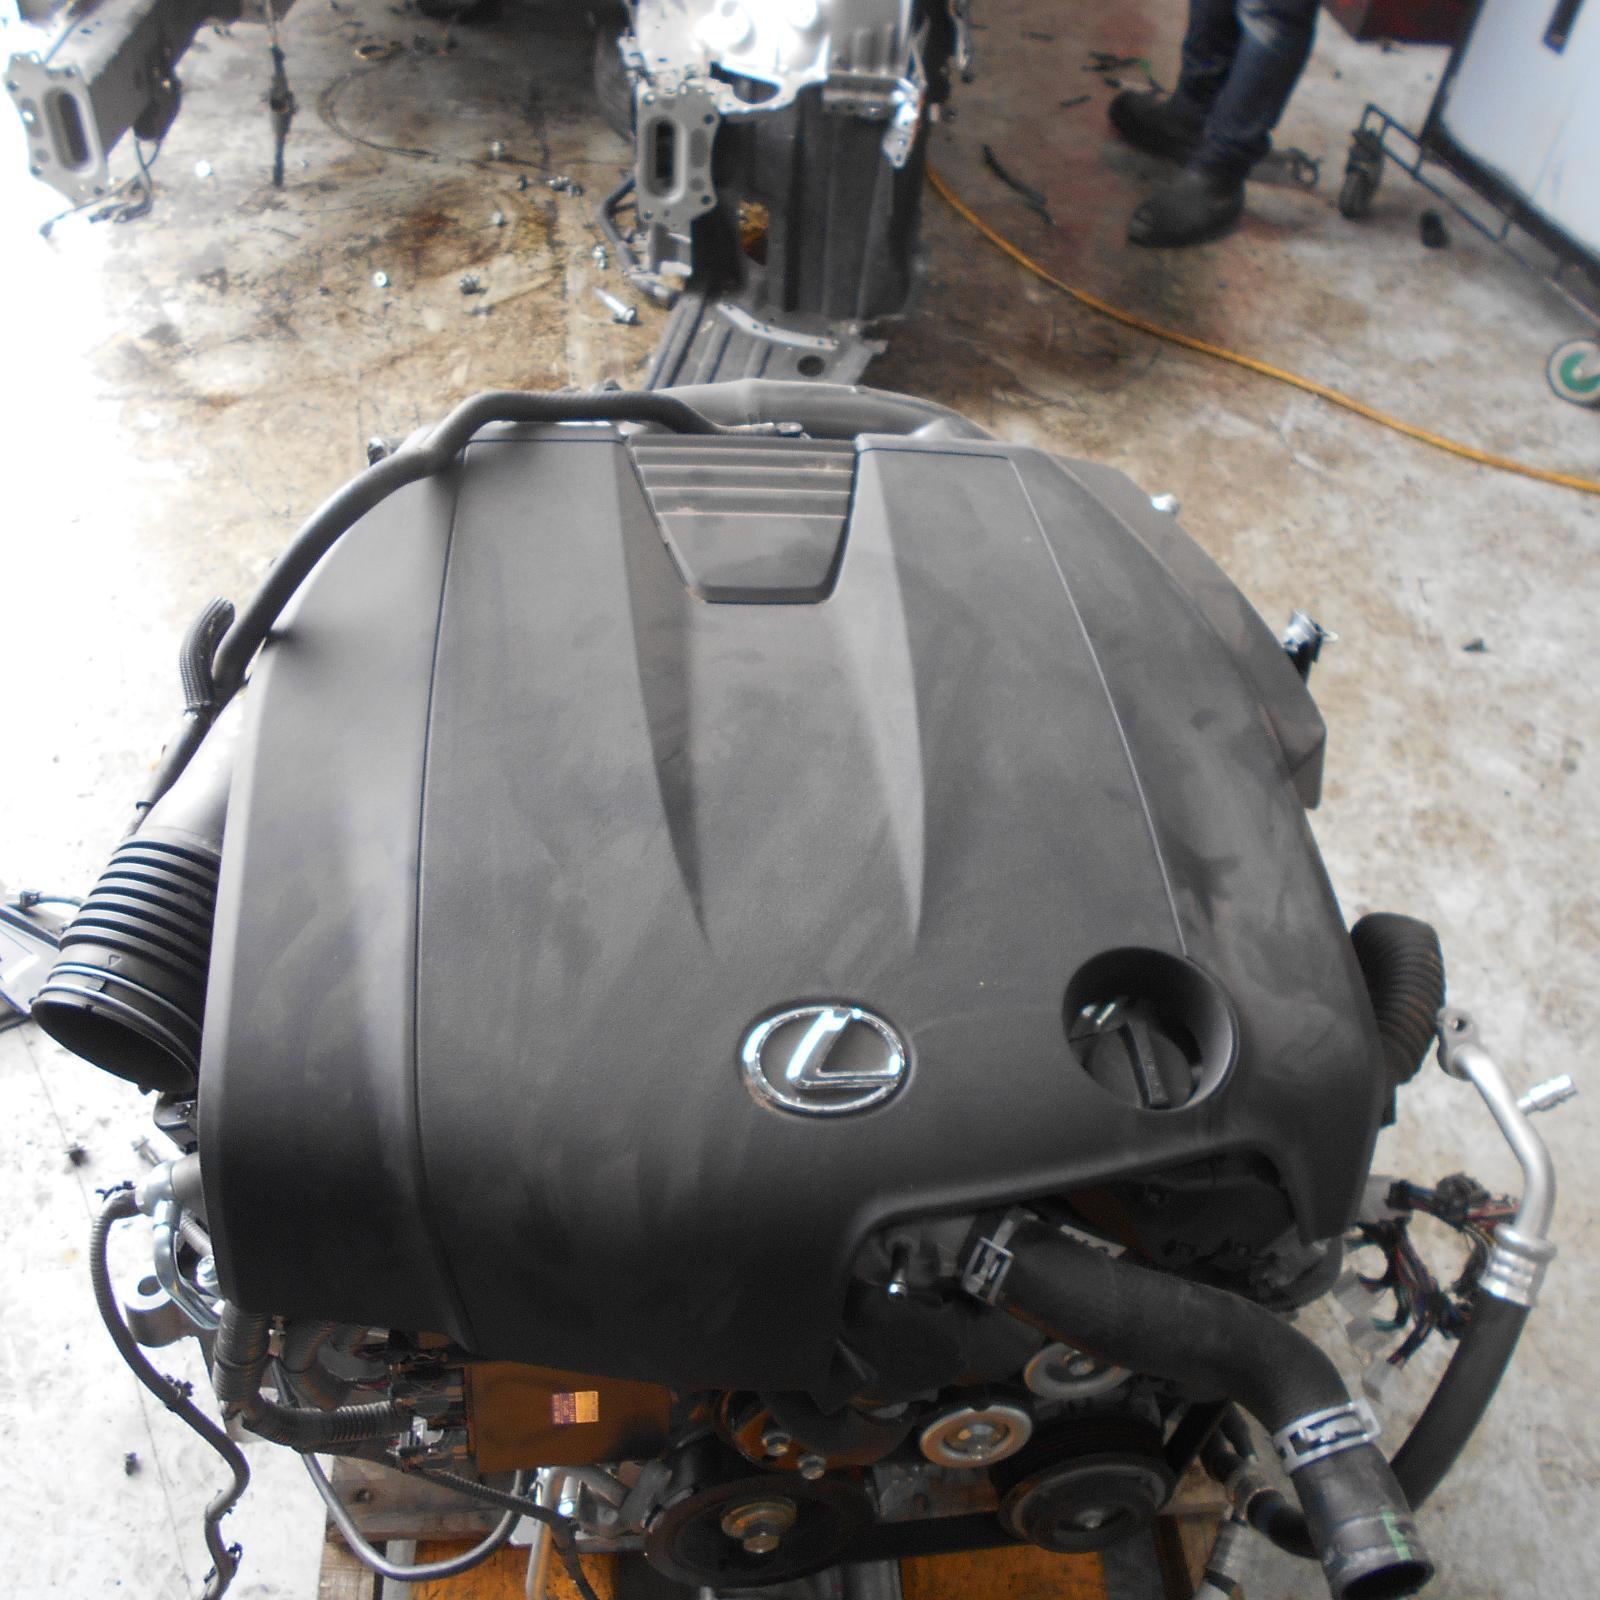 LEXUS IS SERIES, Engine, IS250, PETROL, 2.5, 4GR-FSE, GSE30R, 04/13-08/15